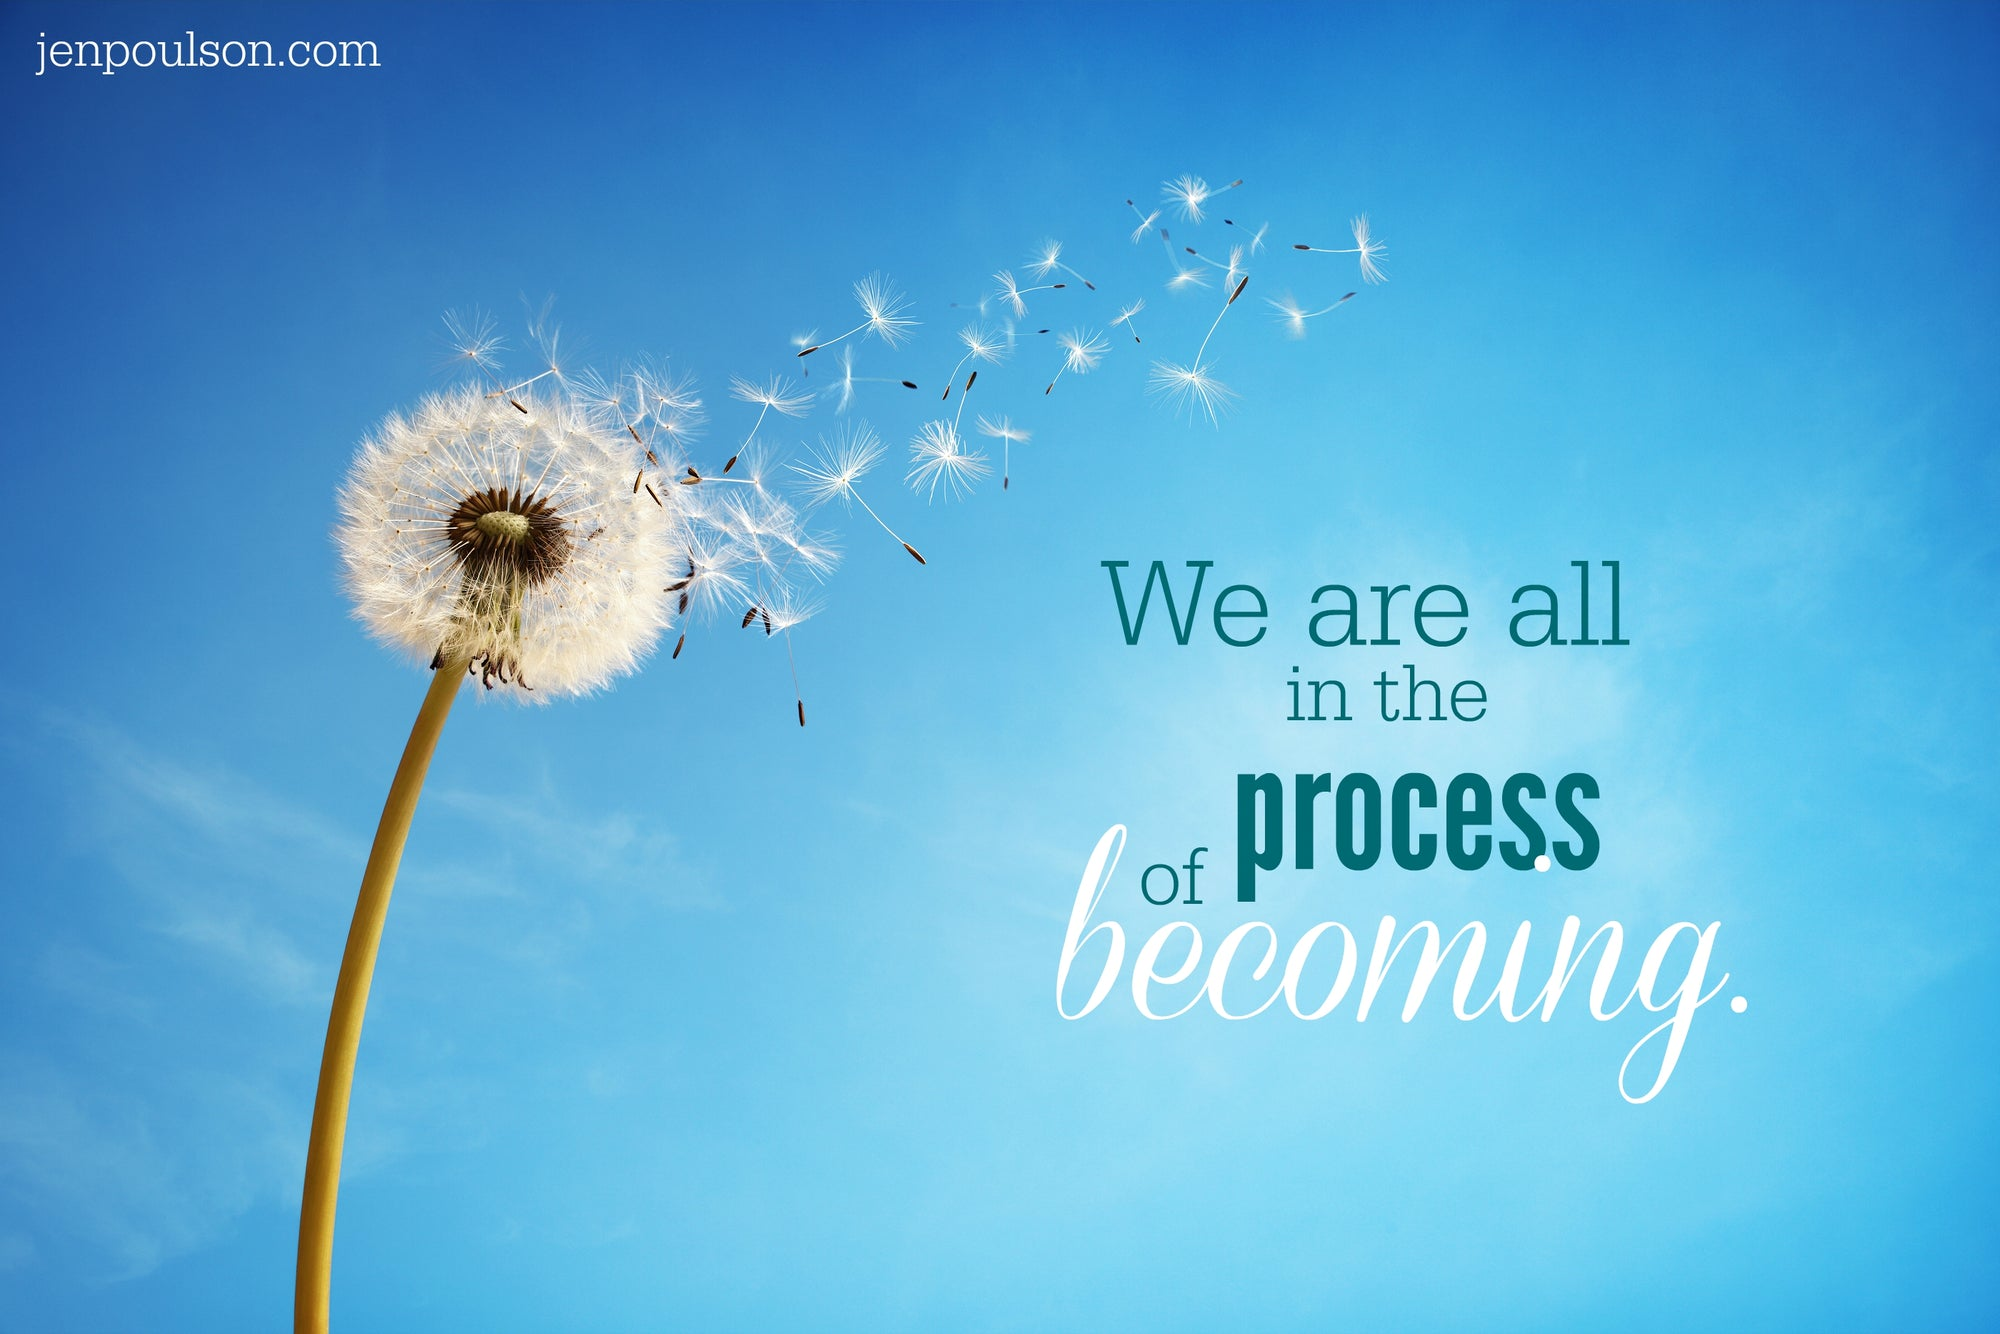 We are all in the process of becoming.